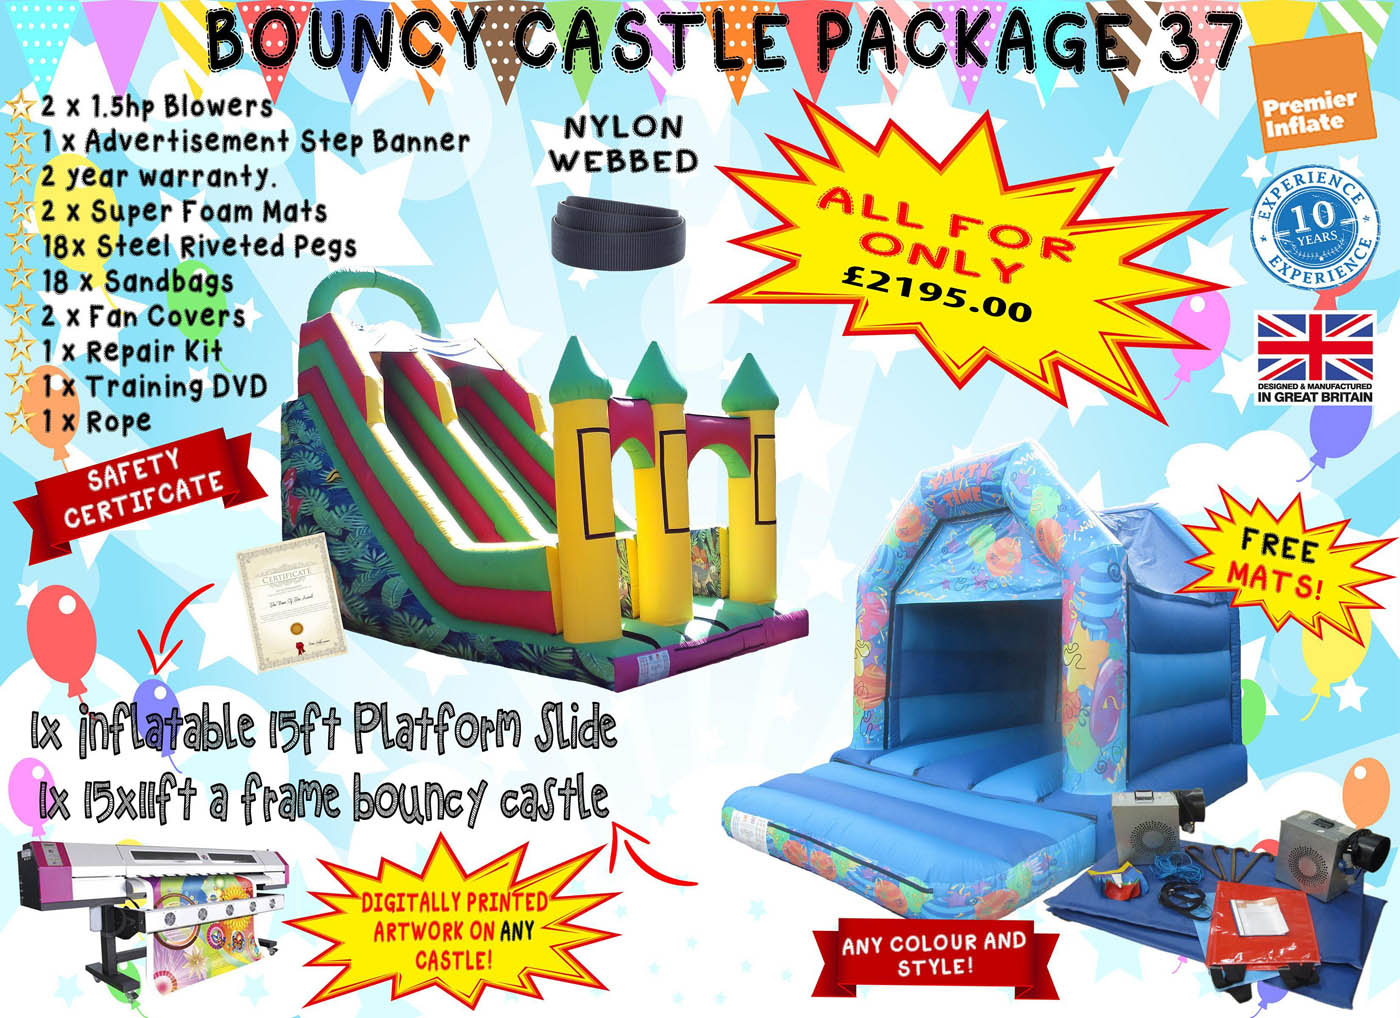 UK Bouncy Castle Package Deals for Sale